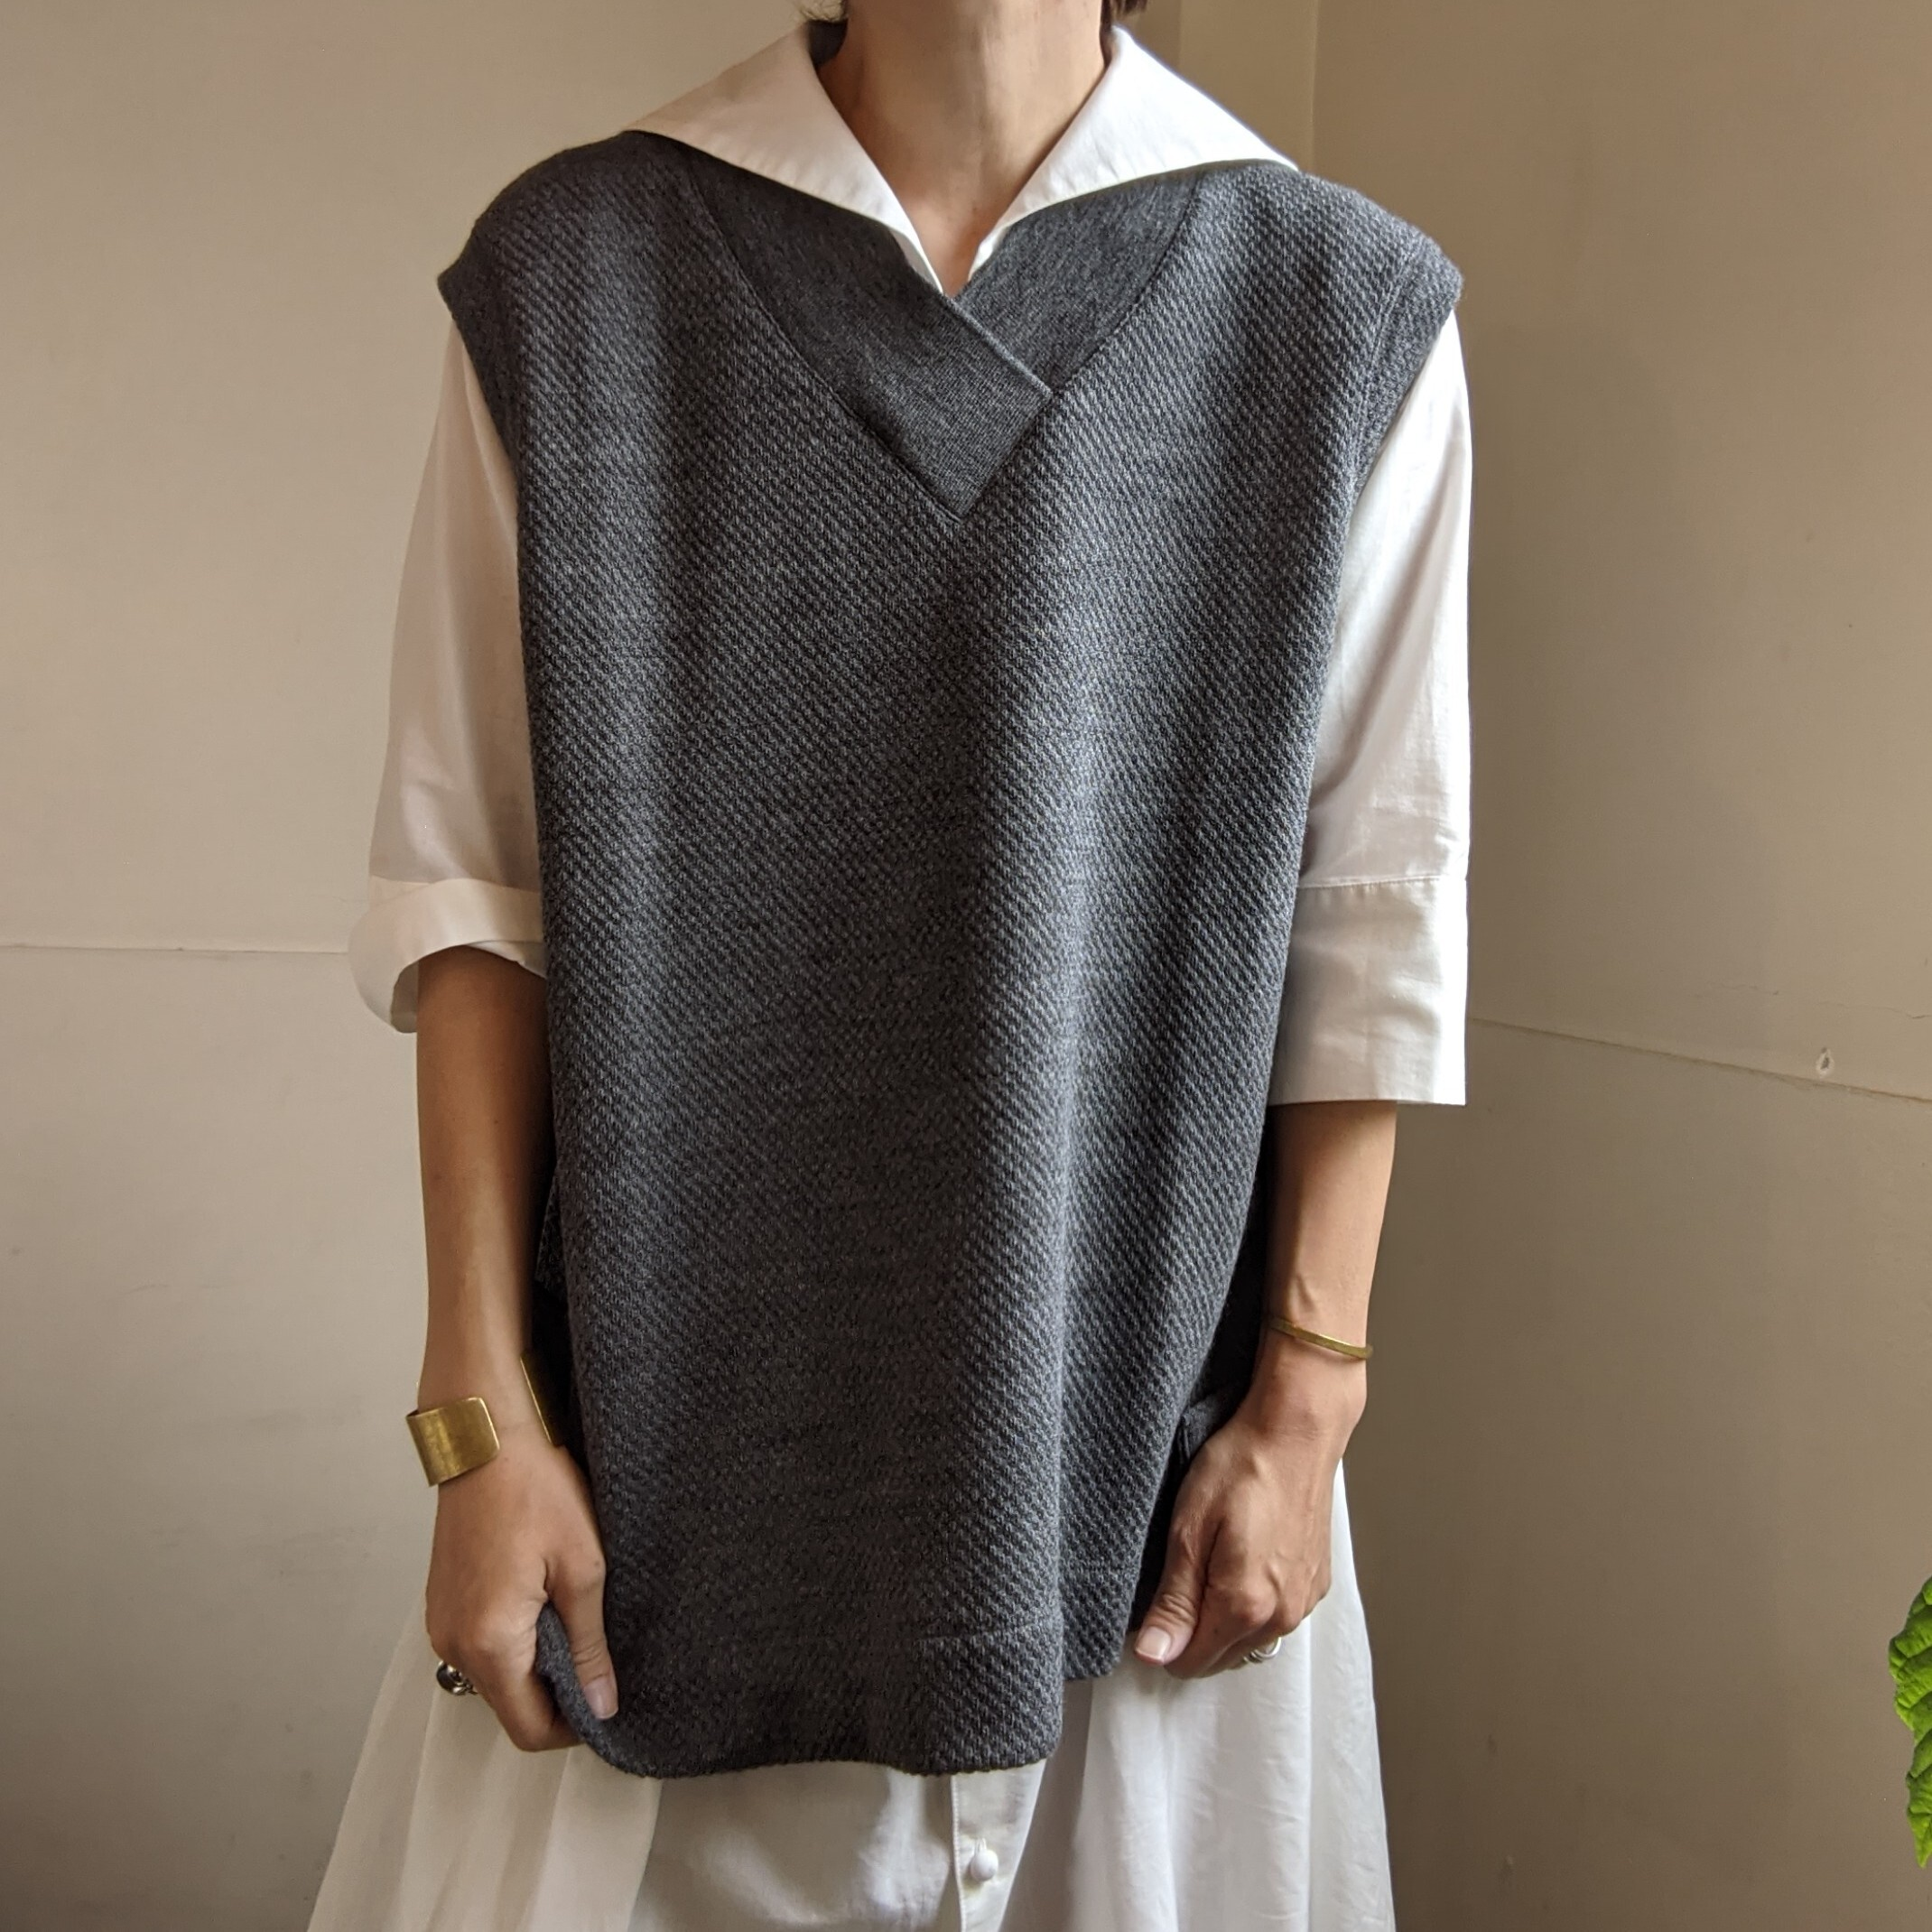 【 CLOSELY CLICK PEBBLE 】クロースリークリックペブル / V-neck long vest / wool100 / ダブルかのこ/ middle-grey